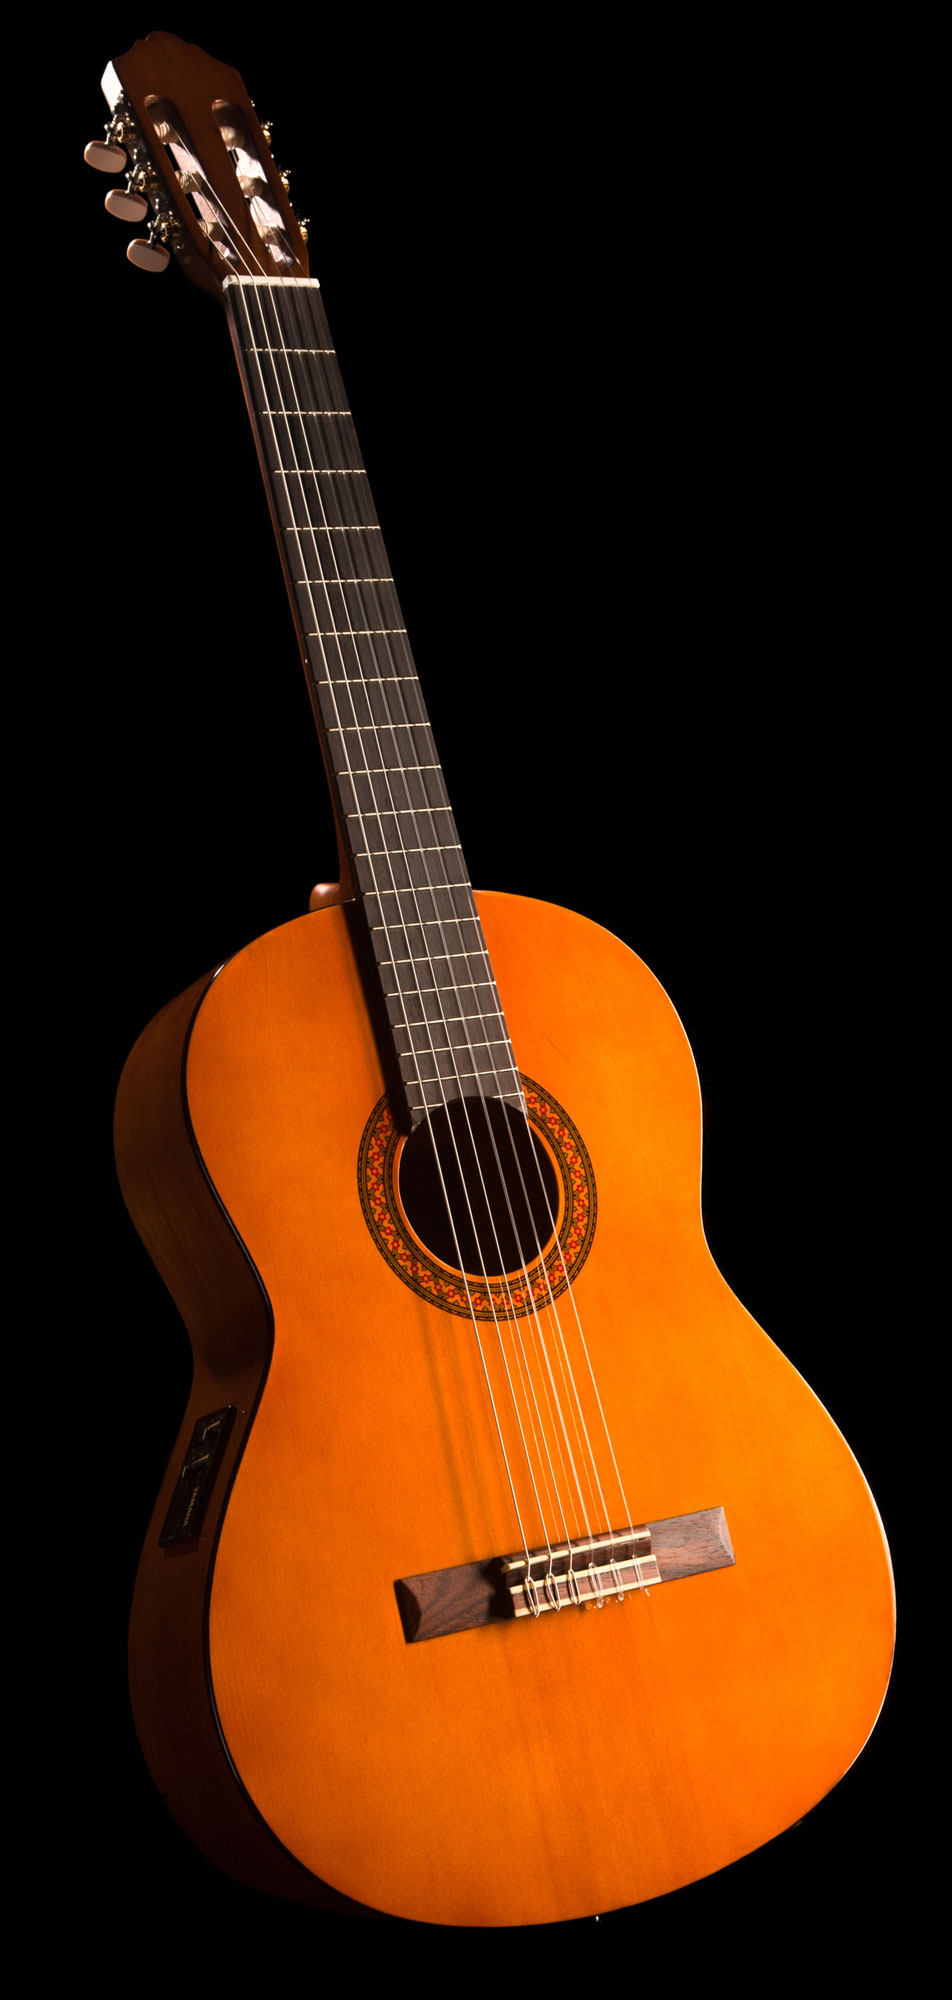 Yamaha Cx40 Mark Ii Electro Classical Guitar Yamaha